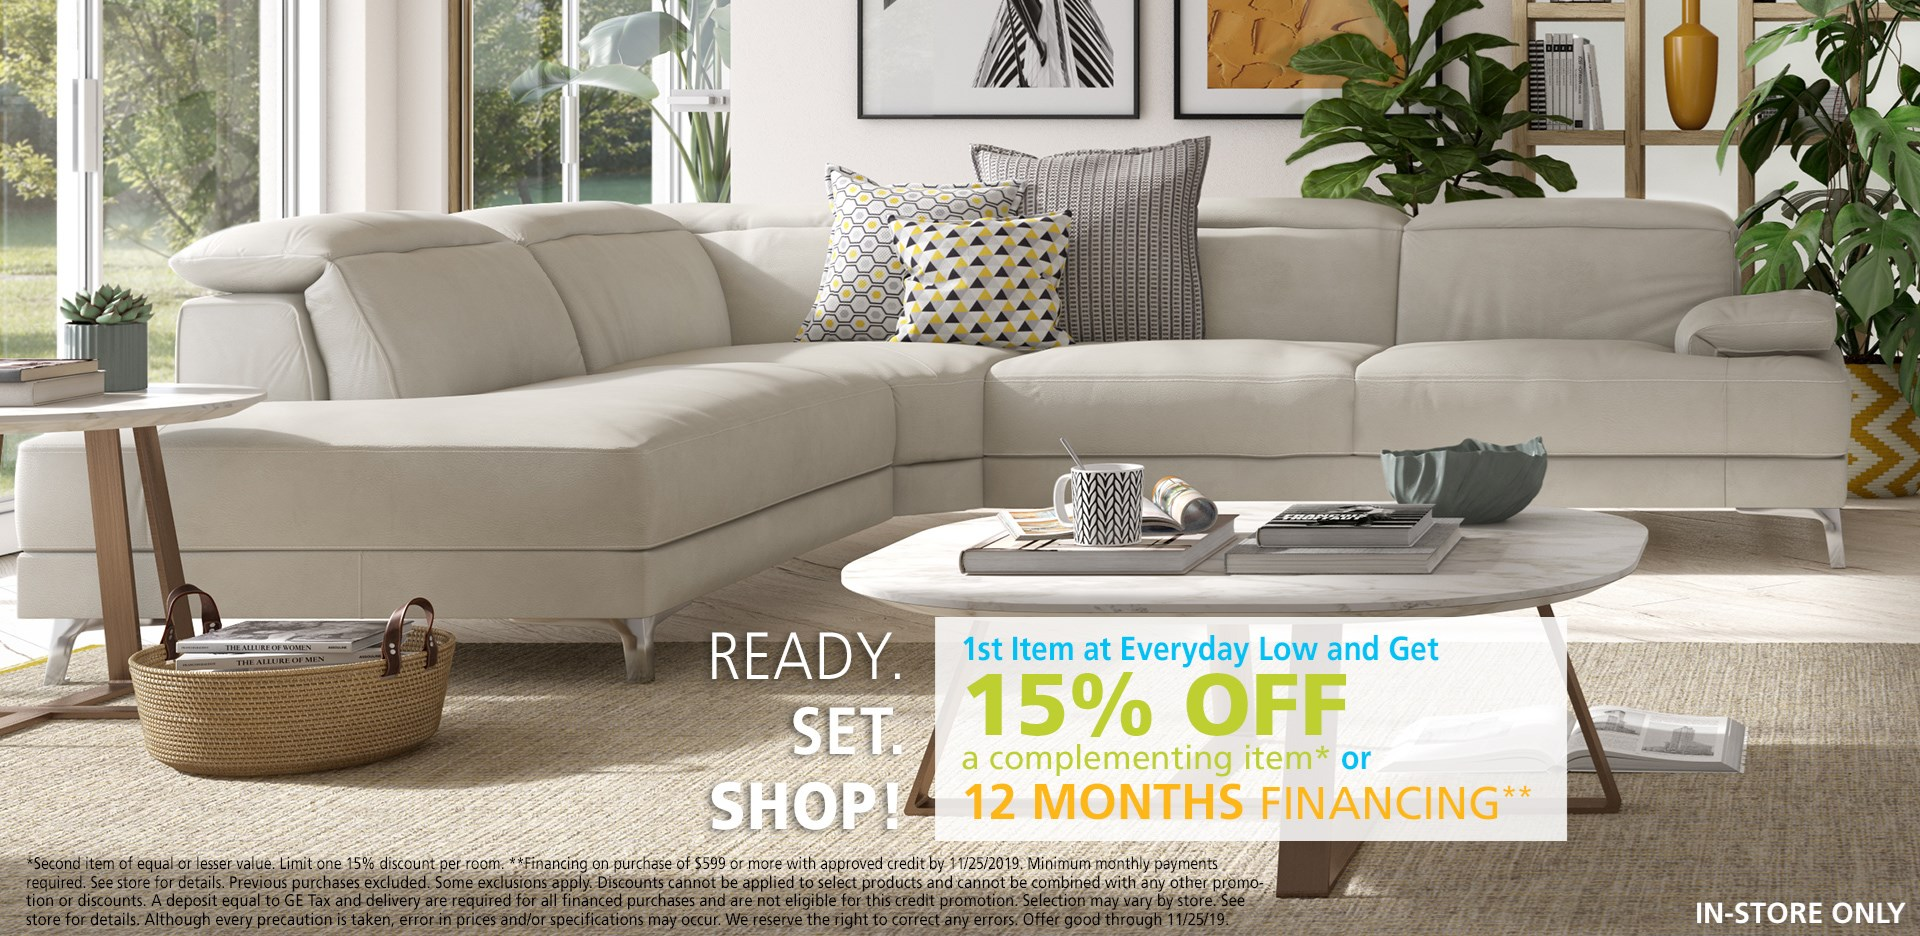 Buy one item and get 15% a complementing item, or ask about 12 months financing. See store for details.